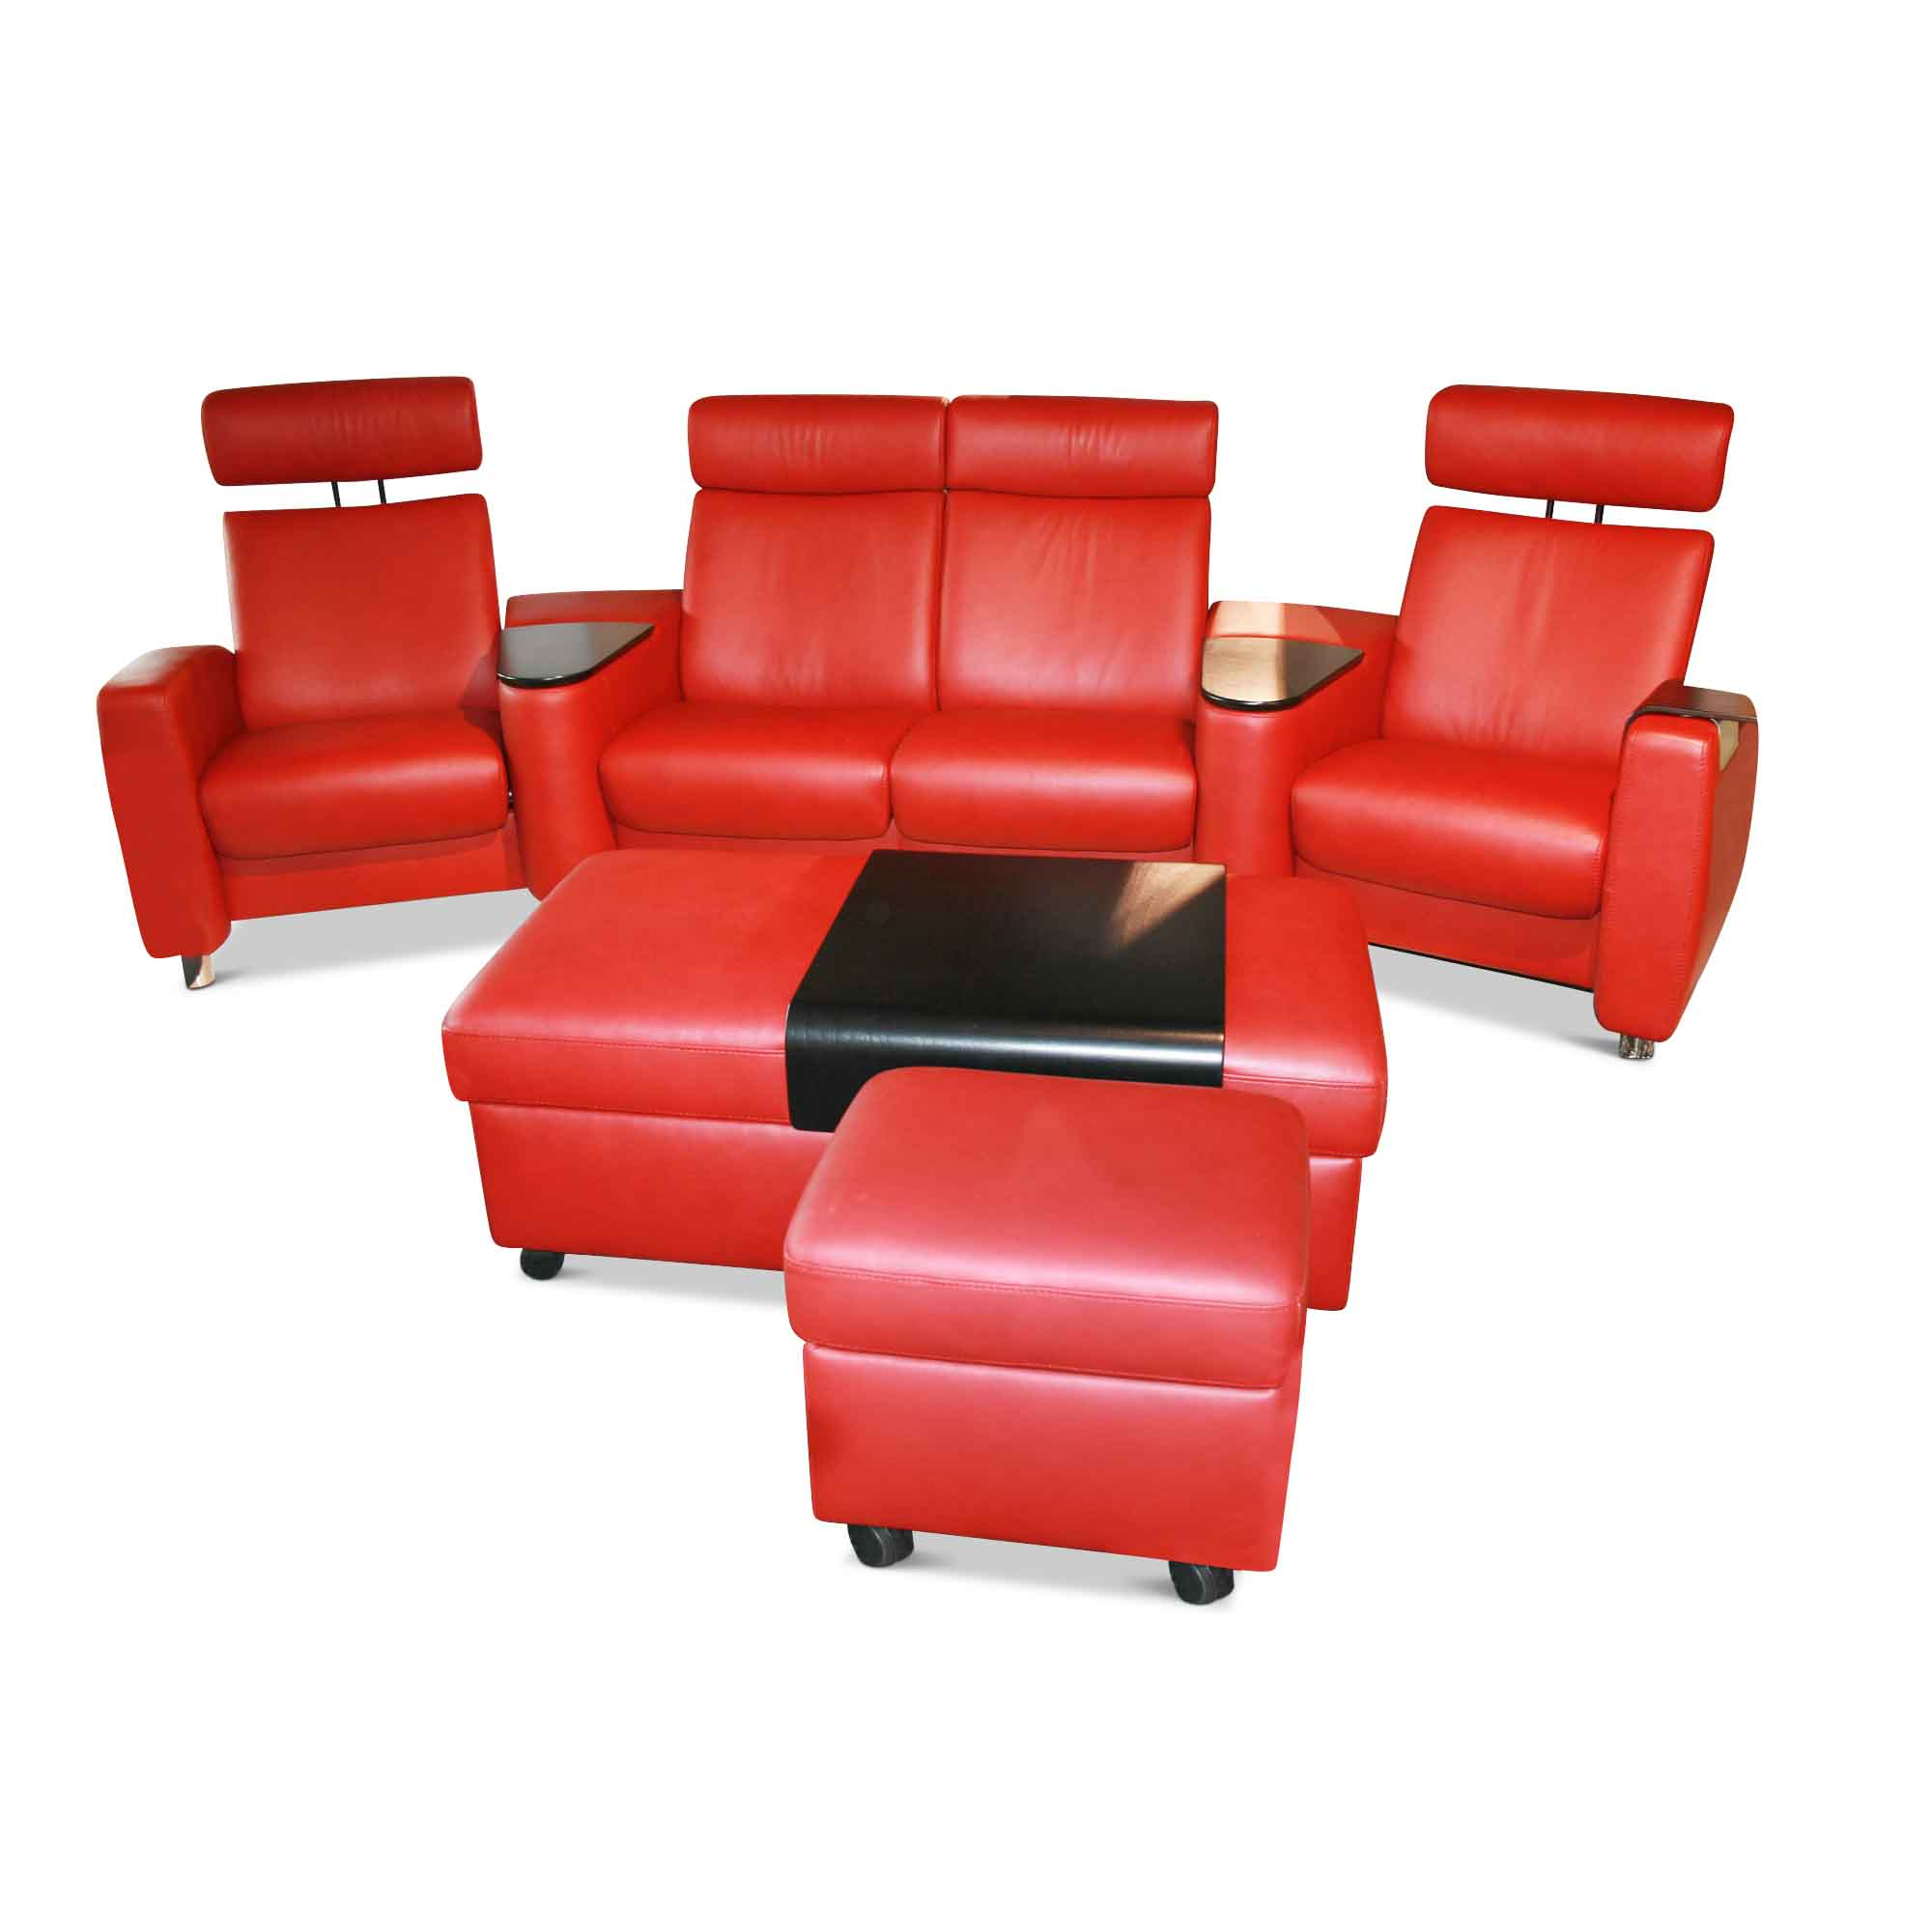 sofa arion mit hocker rot stressless sofas g nstig kaufen m belfirst. Black Bedroom Furniture Sets. Home Design Ideas